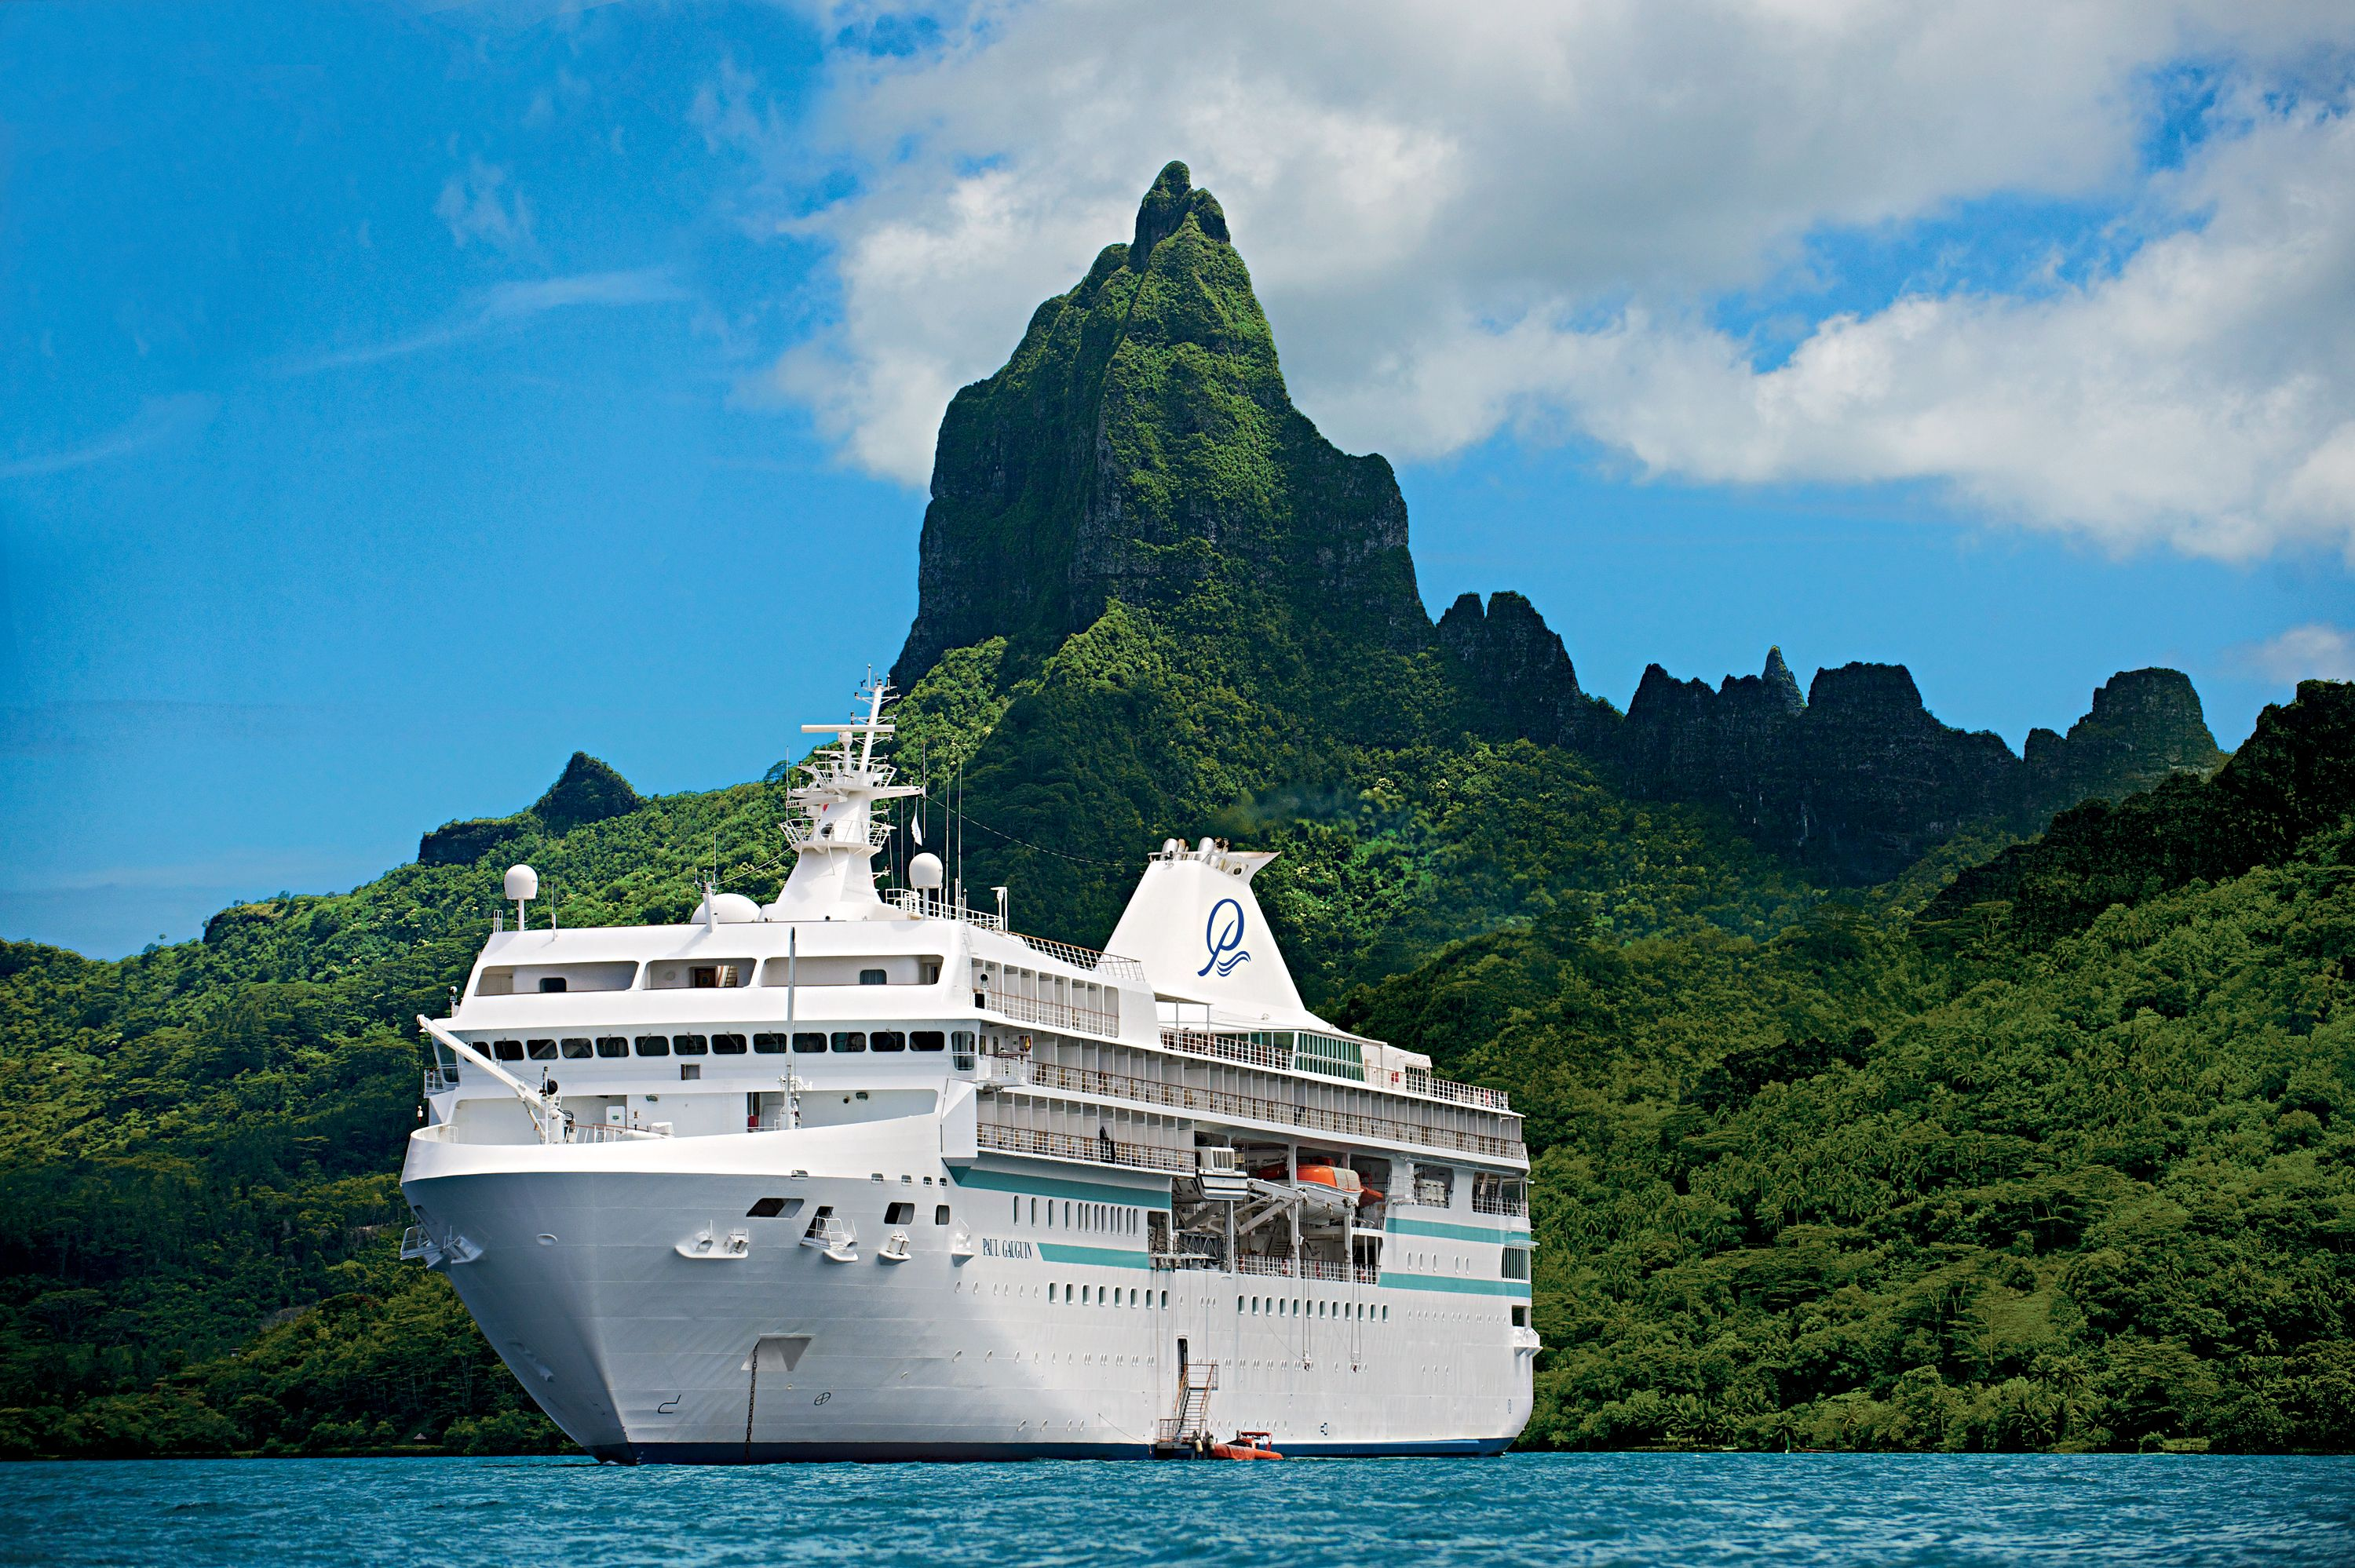 2019 Primary Image, Ship in Bora Bora, hi-res